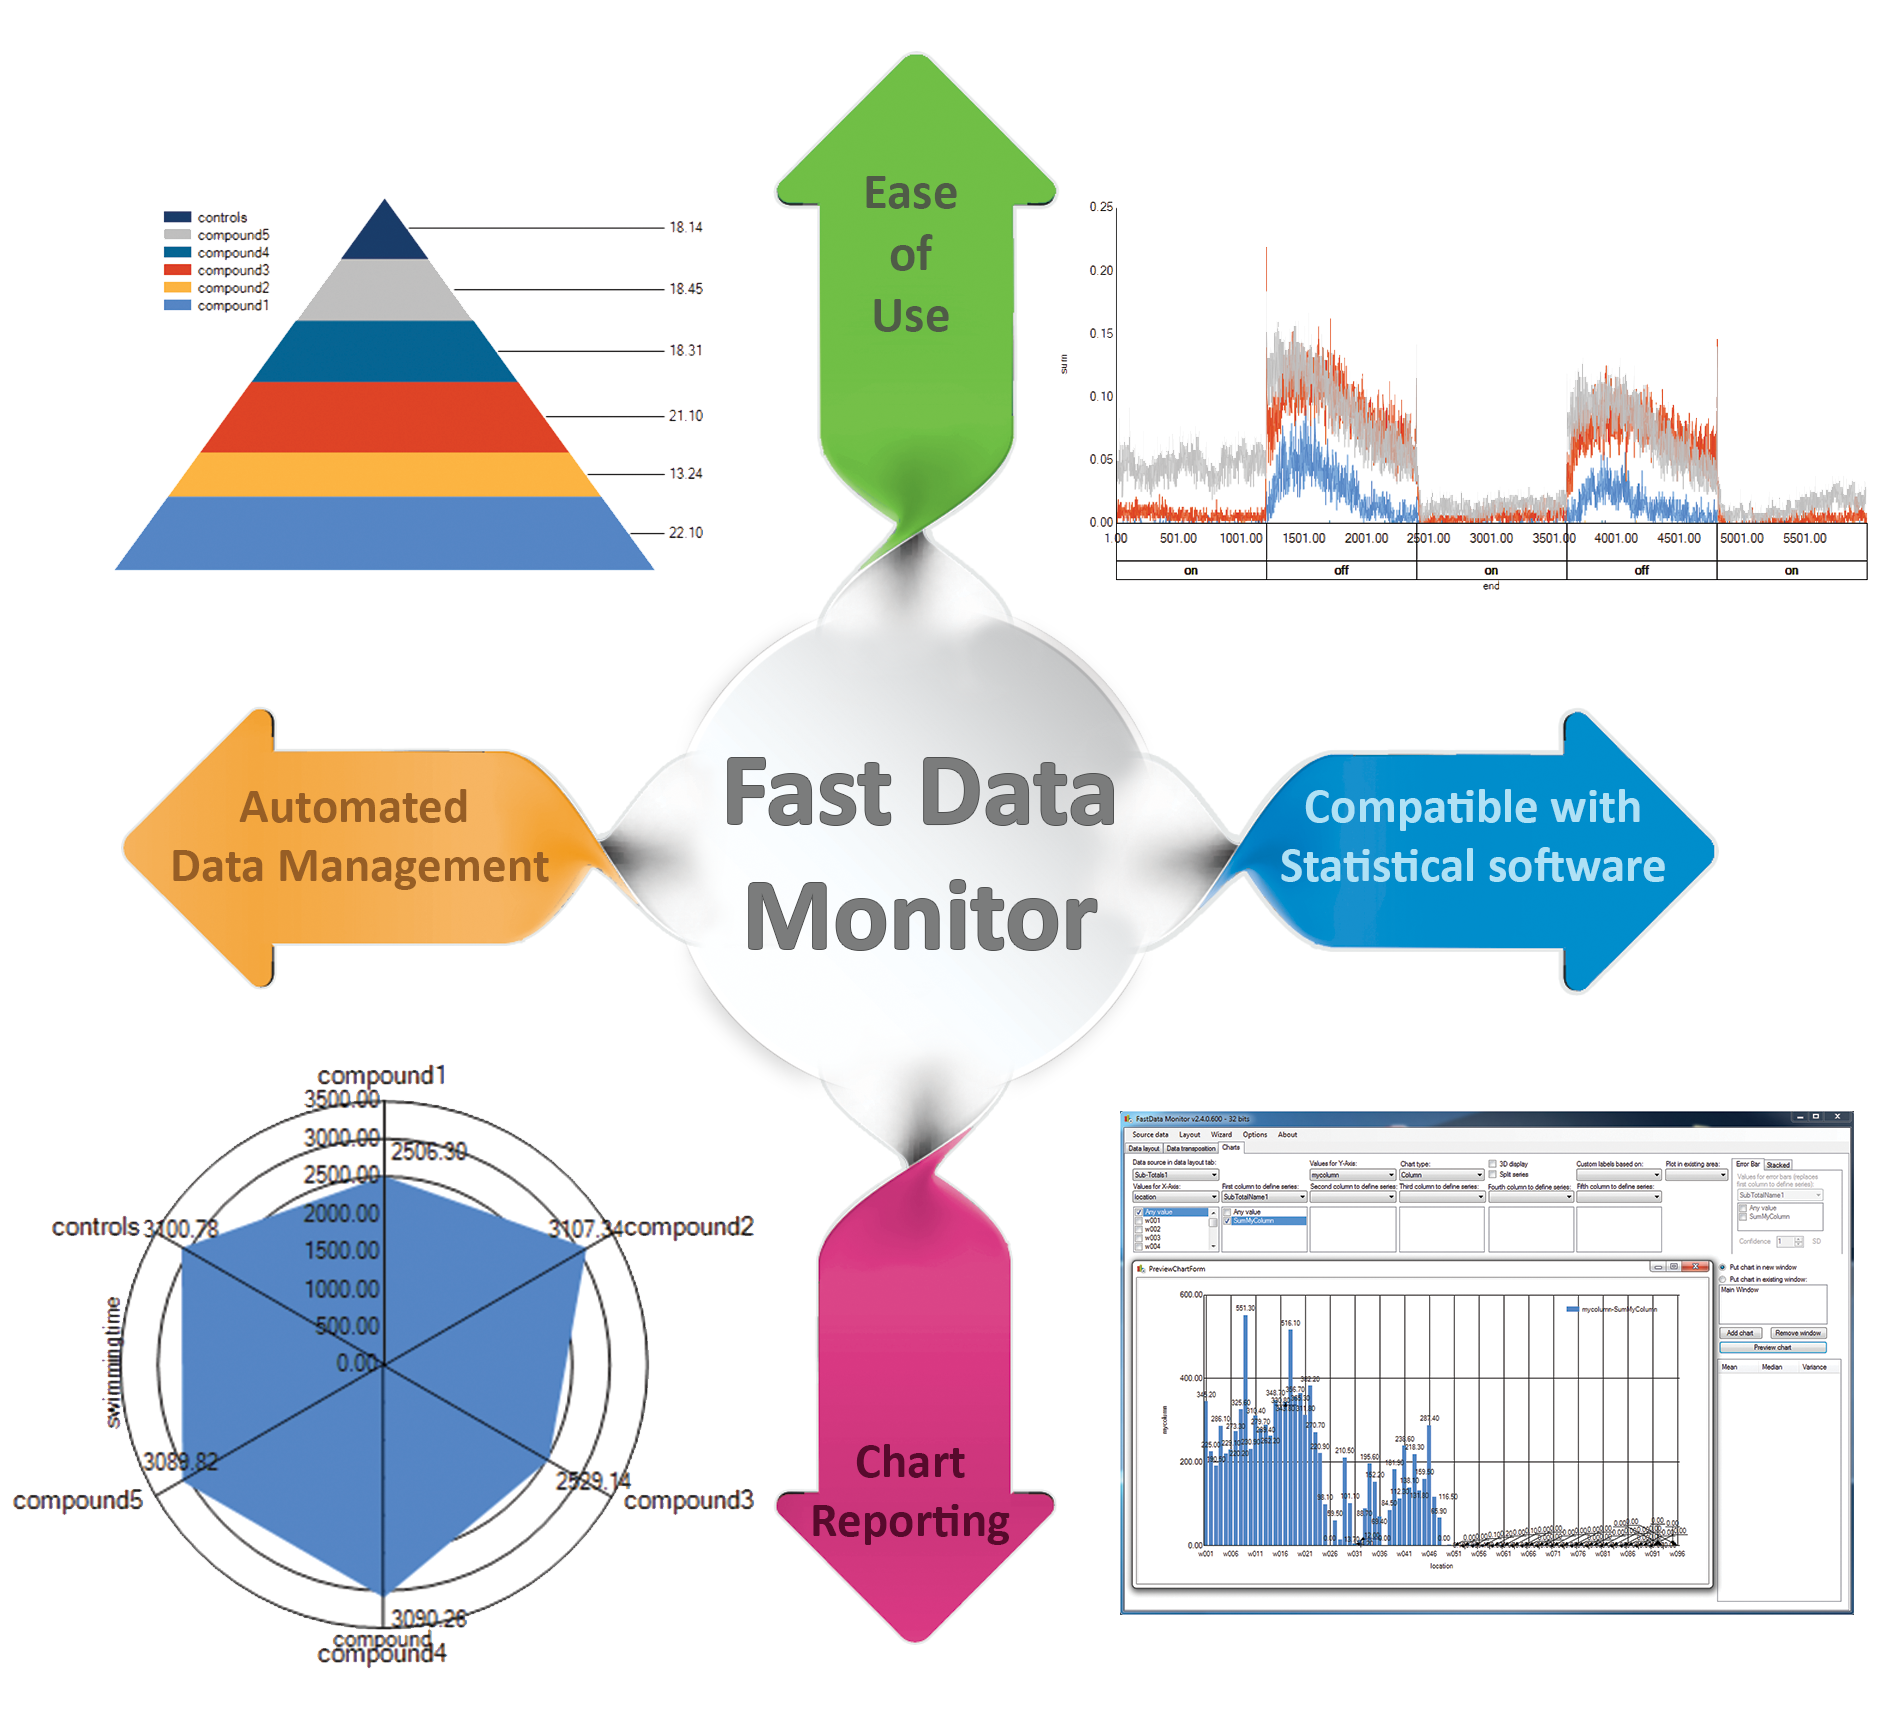 Fast Data Monitor - Viewpoint Innovative Leader